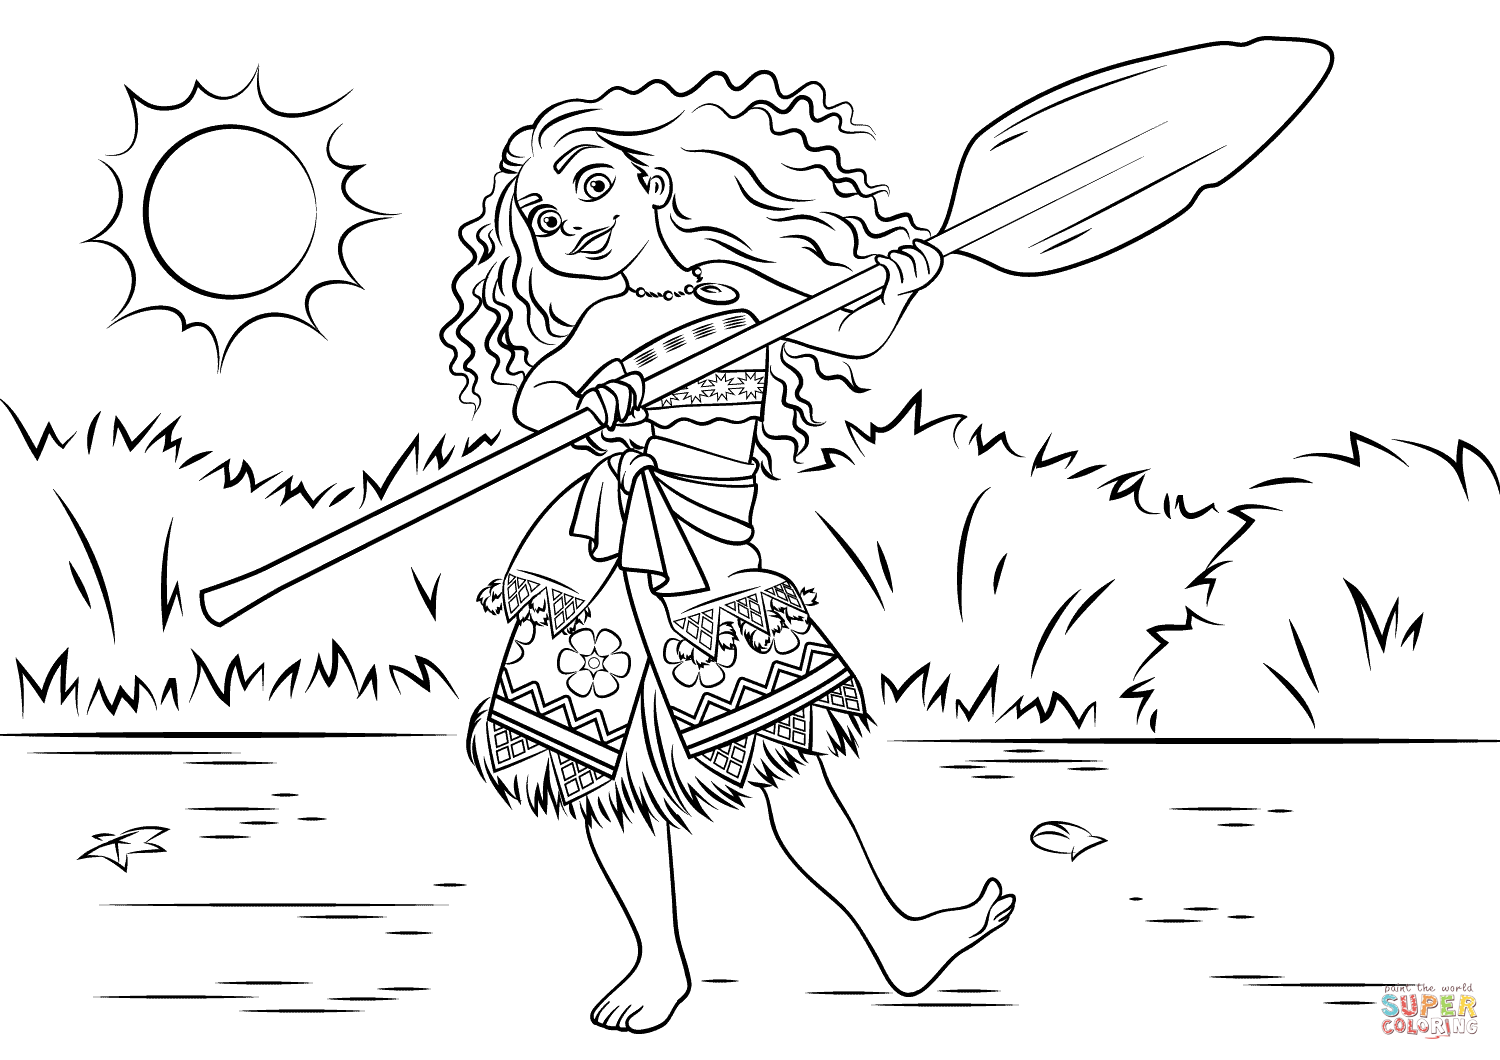 Princess Moana Waialiki Coloring Page Free Printable Coloring Pages